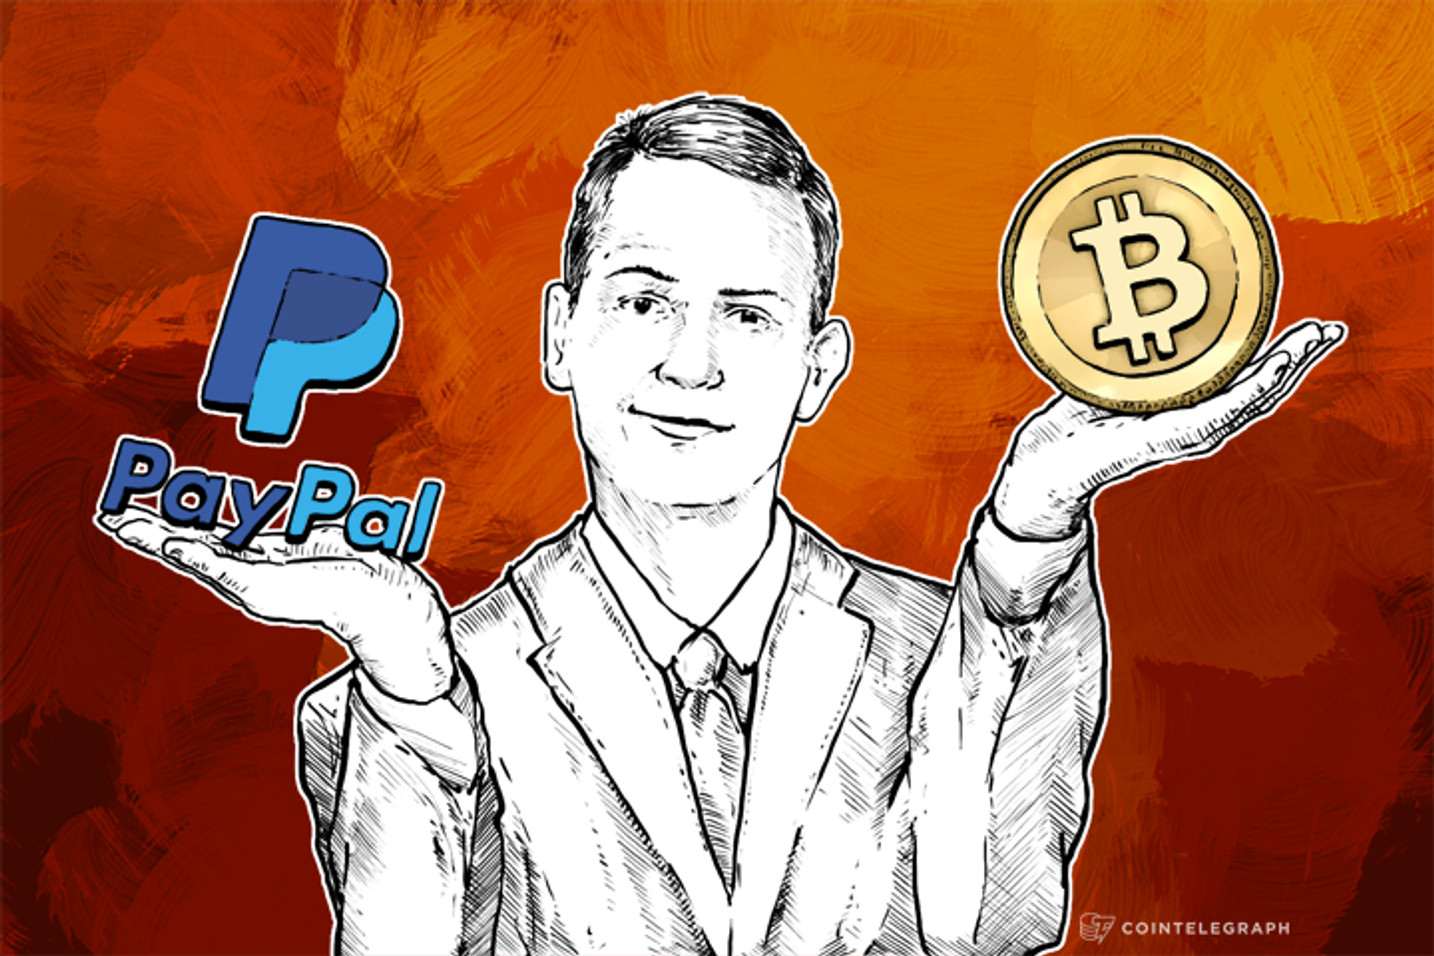 PayPal Co-Founder Peter Thiel: 'Unlike PayPal, Bitcoin Succeeded in Developing a Currency'